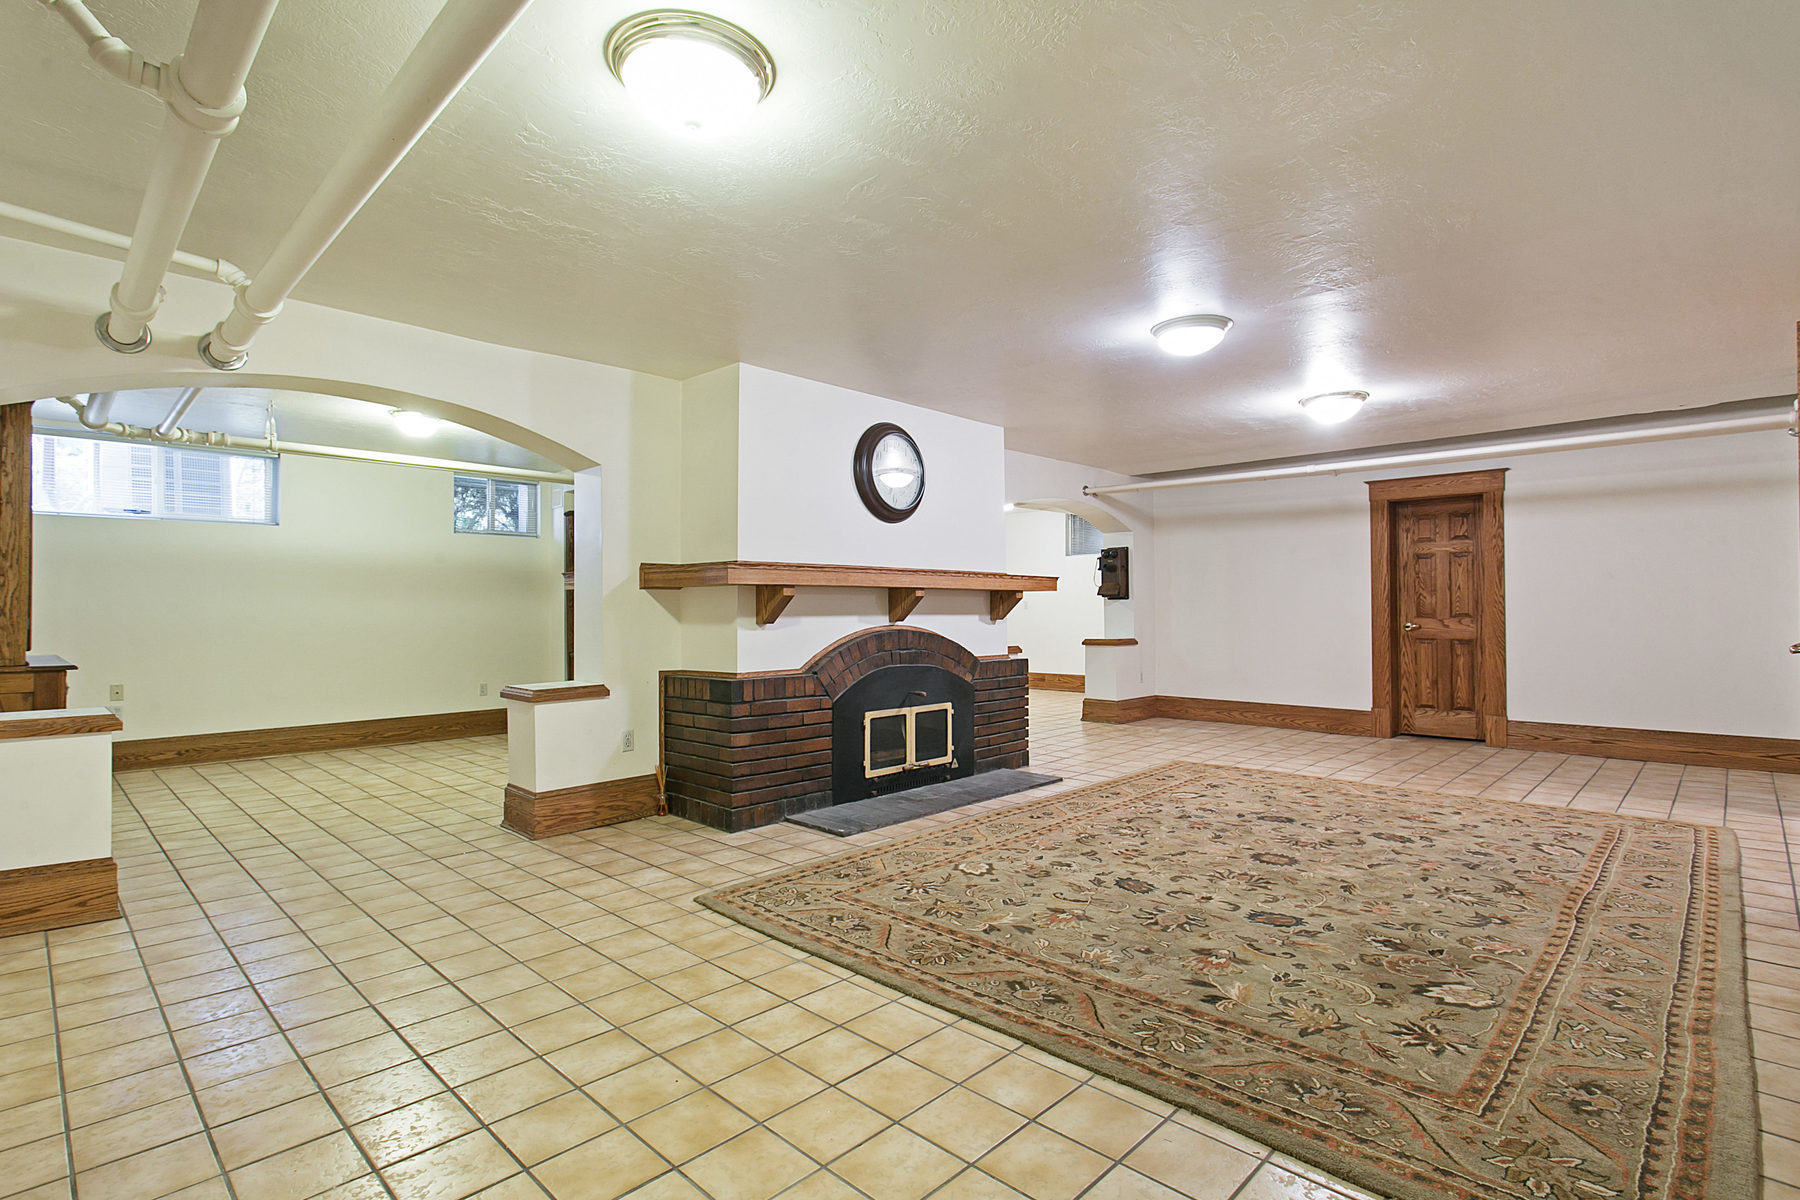 Additional photo for property listing at Own A Piece Of History 1354 E Stratford Ave Salt Lake City, Utah 84106 United States